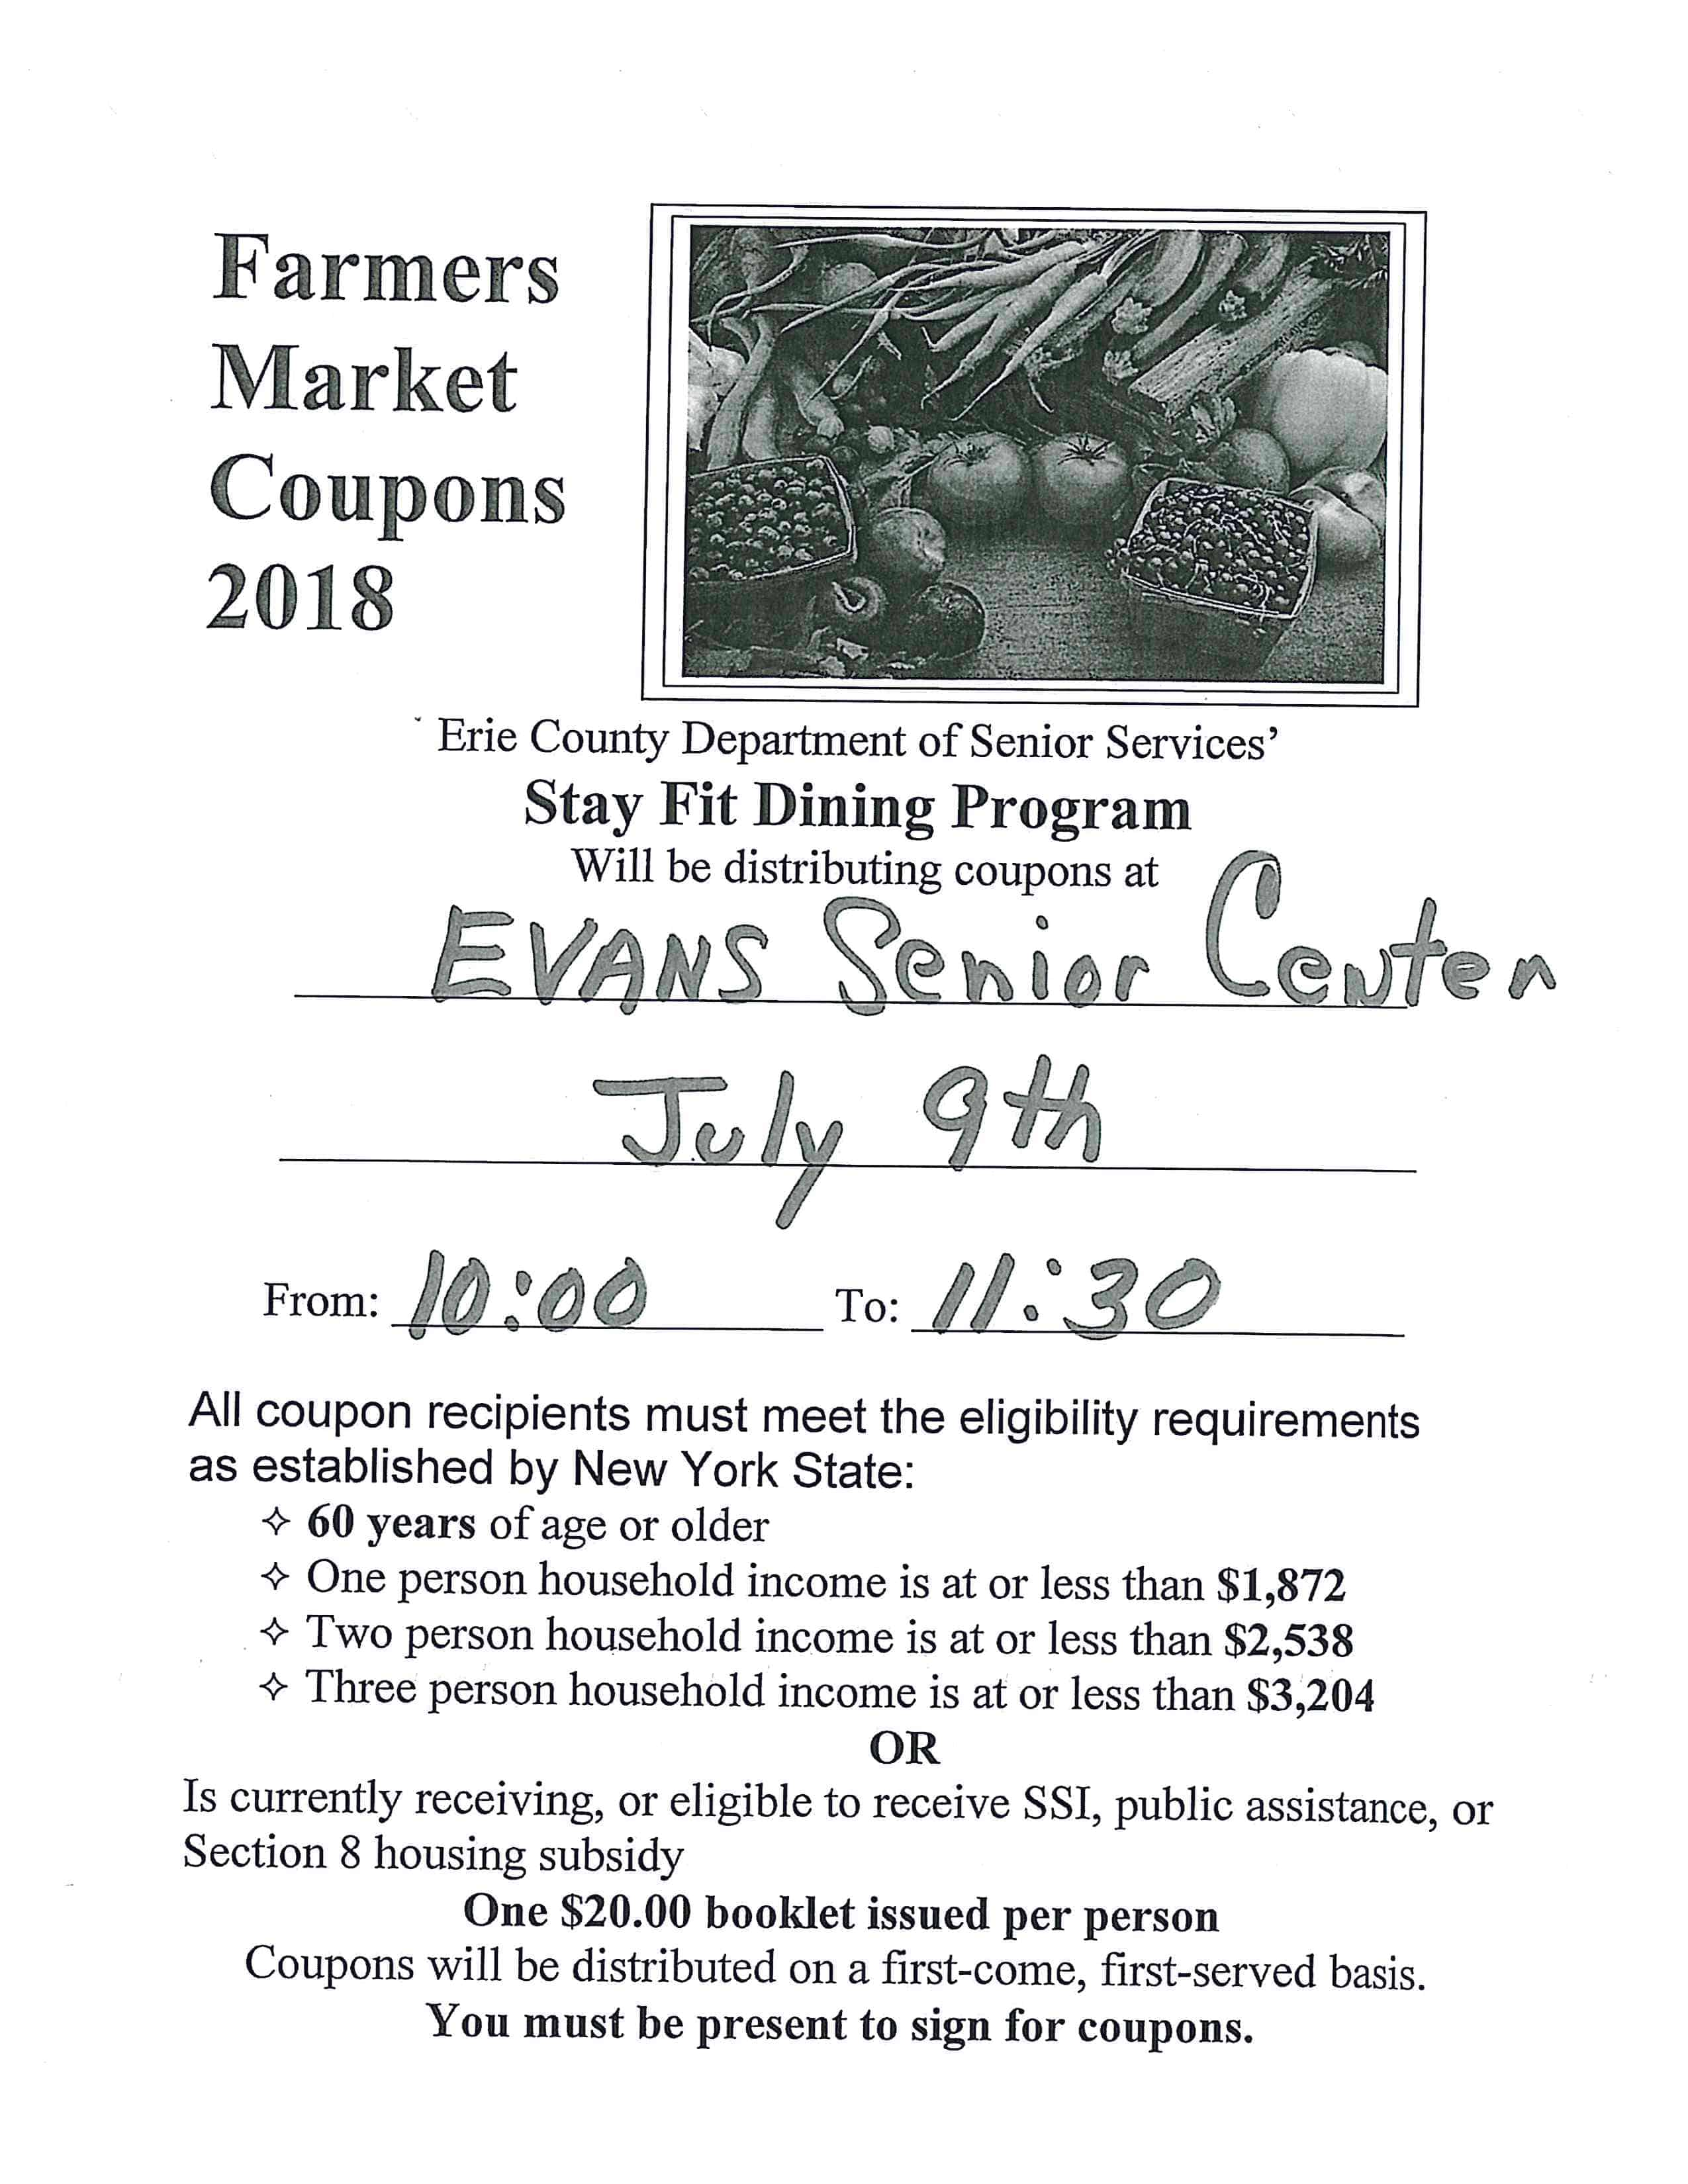 Free Farmers Market Coupons